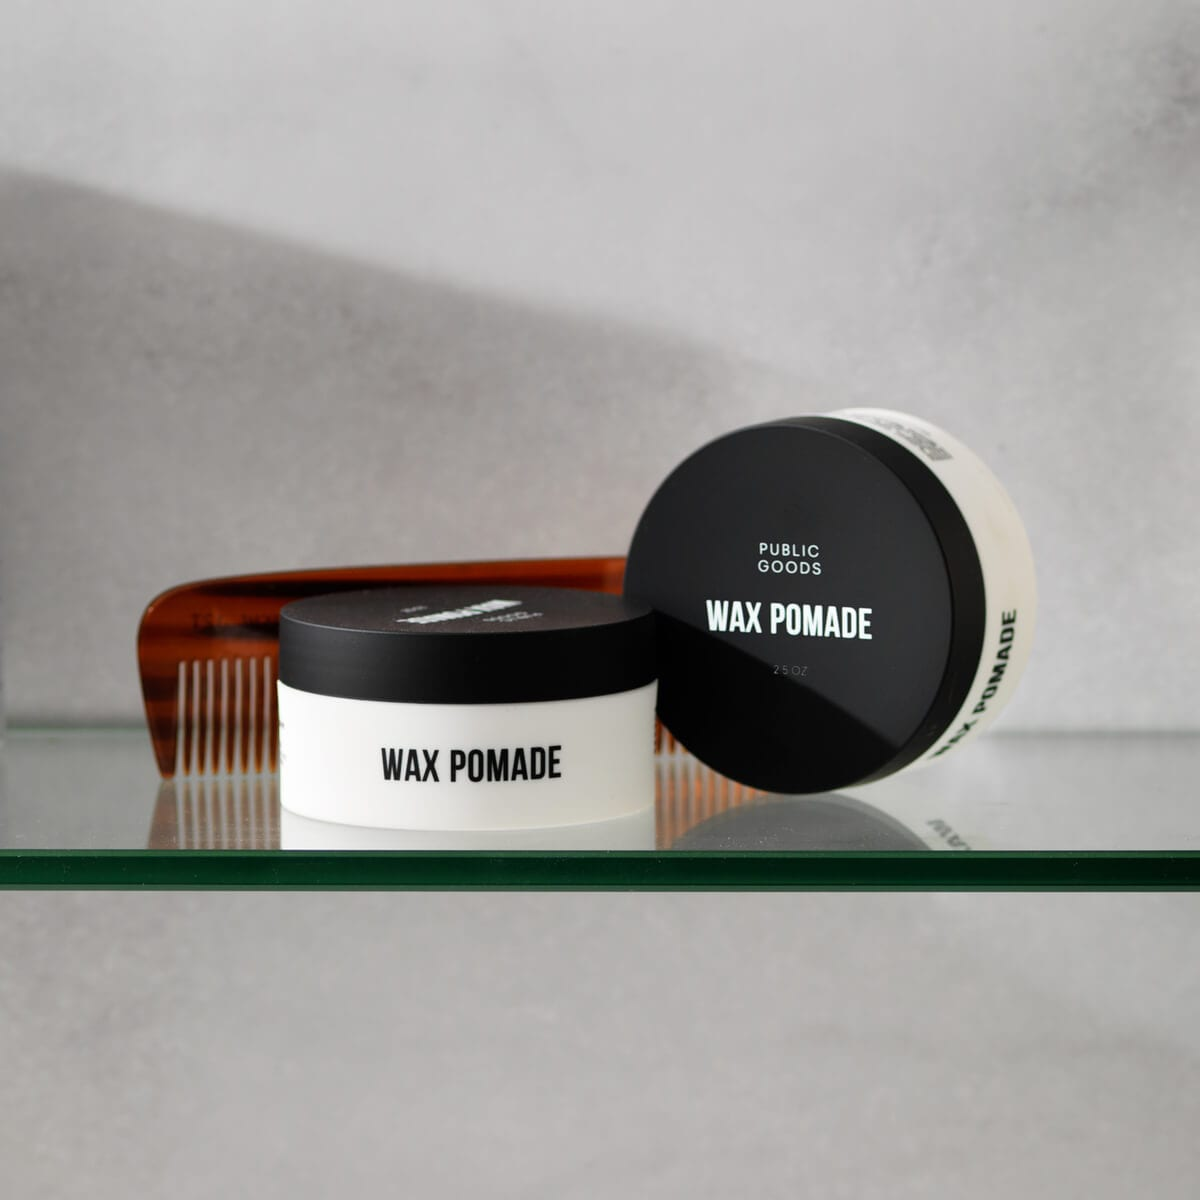 Pomade, Wax or Gel: Which Should You Use to Style Your Hair?